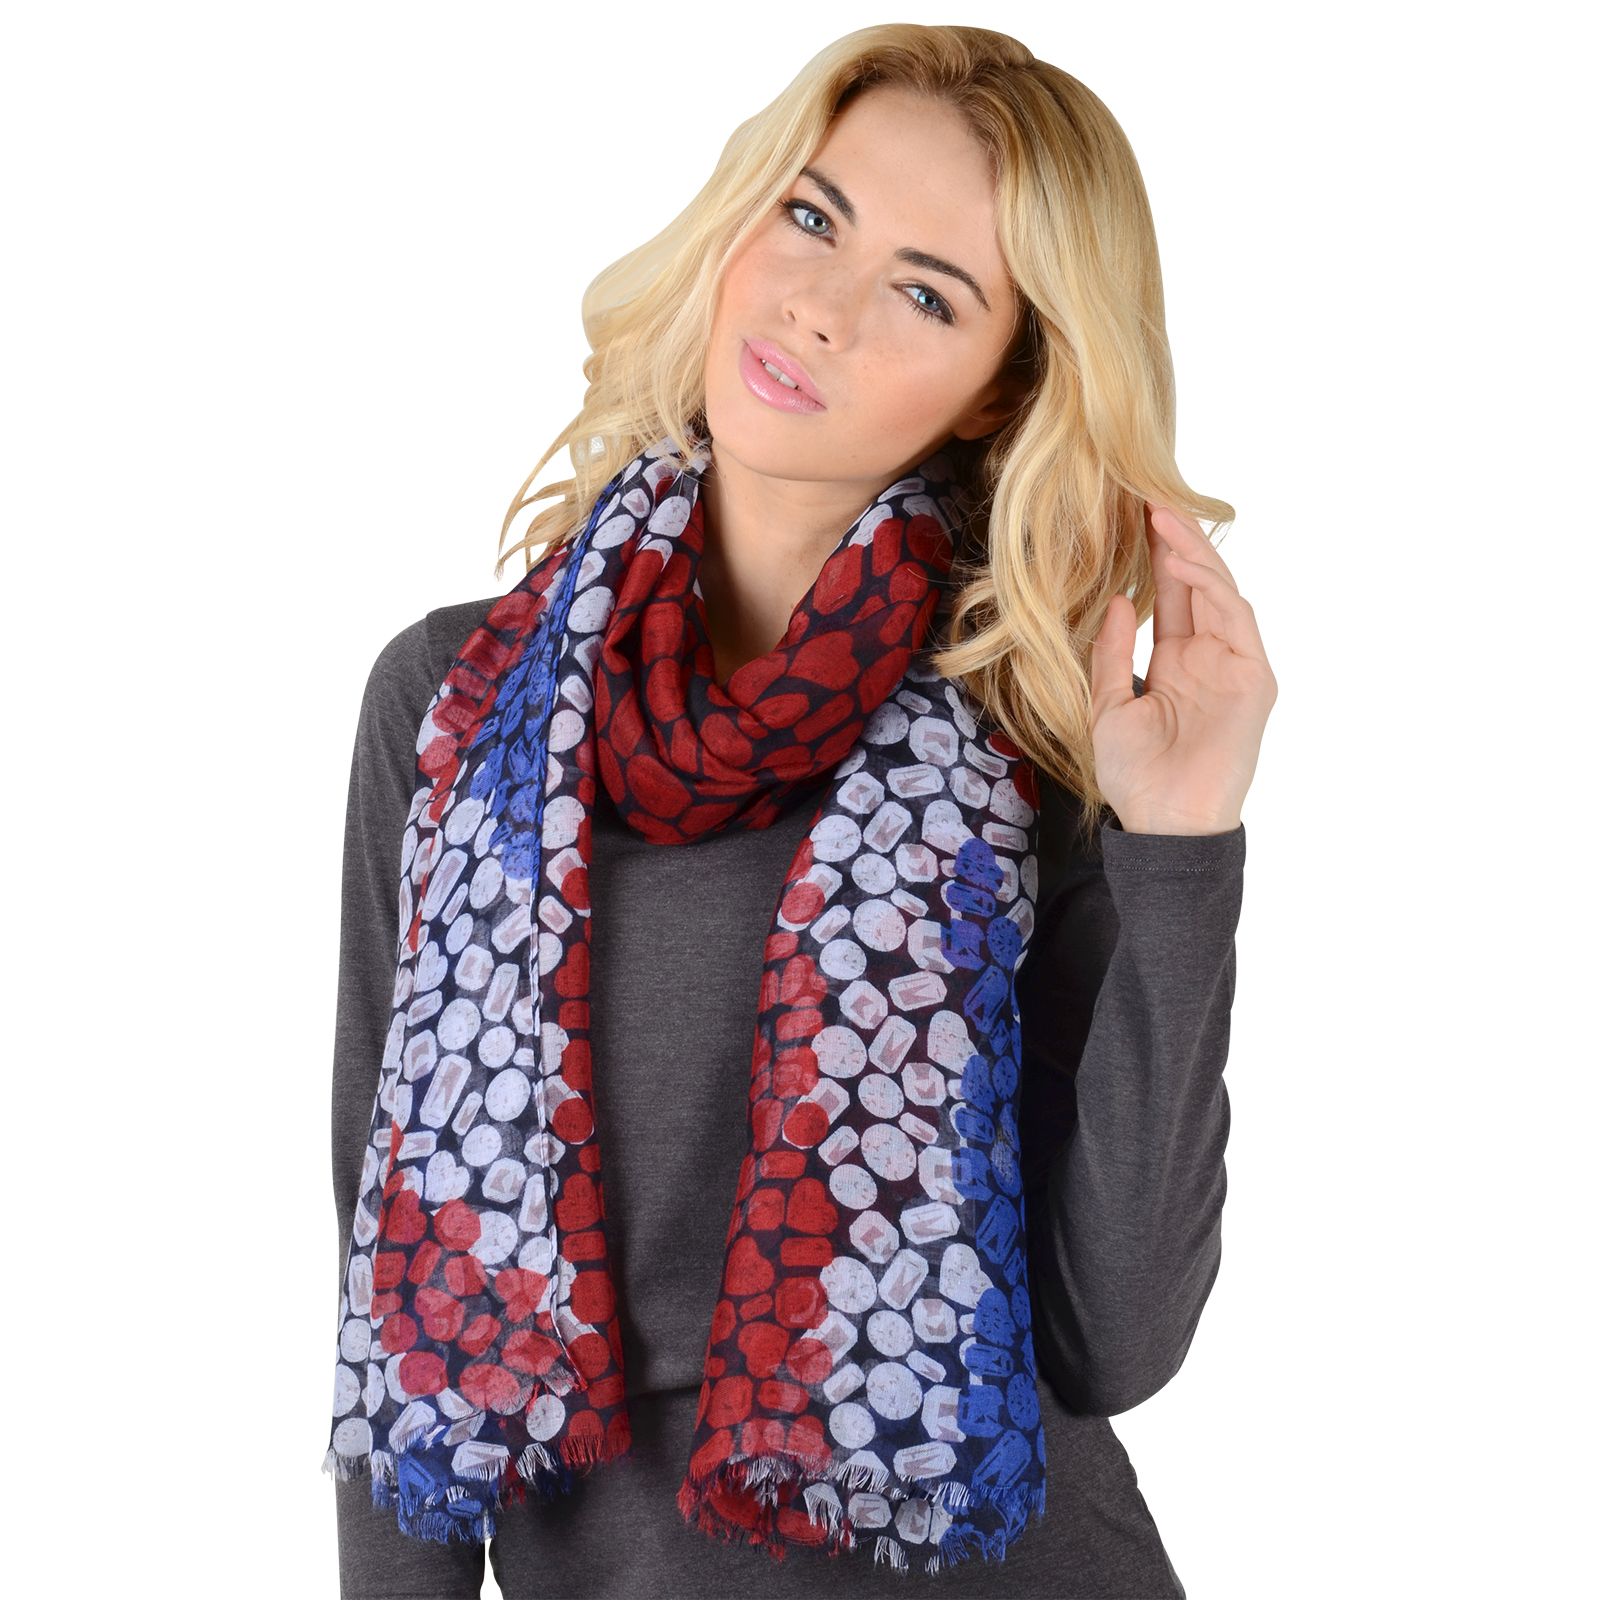 Online shopping for Clothing from a great selection of Scarves, Shawls, Neckerchiefs, Pashminas, Stoles, Head Scarves & more at everyday low prices.